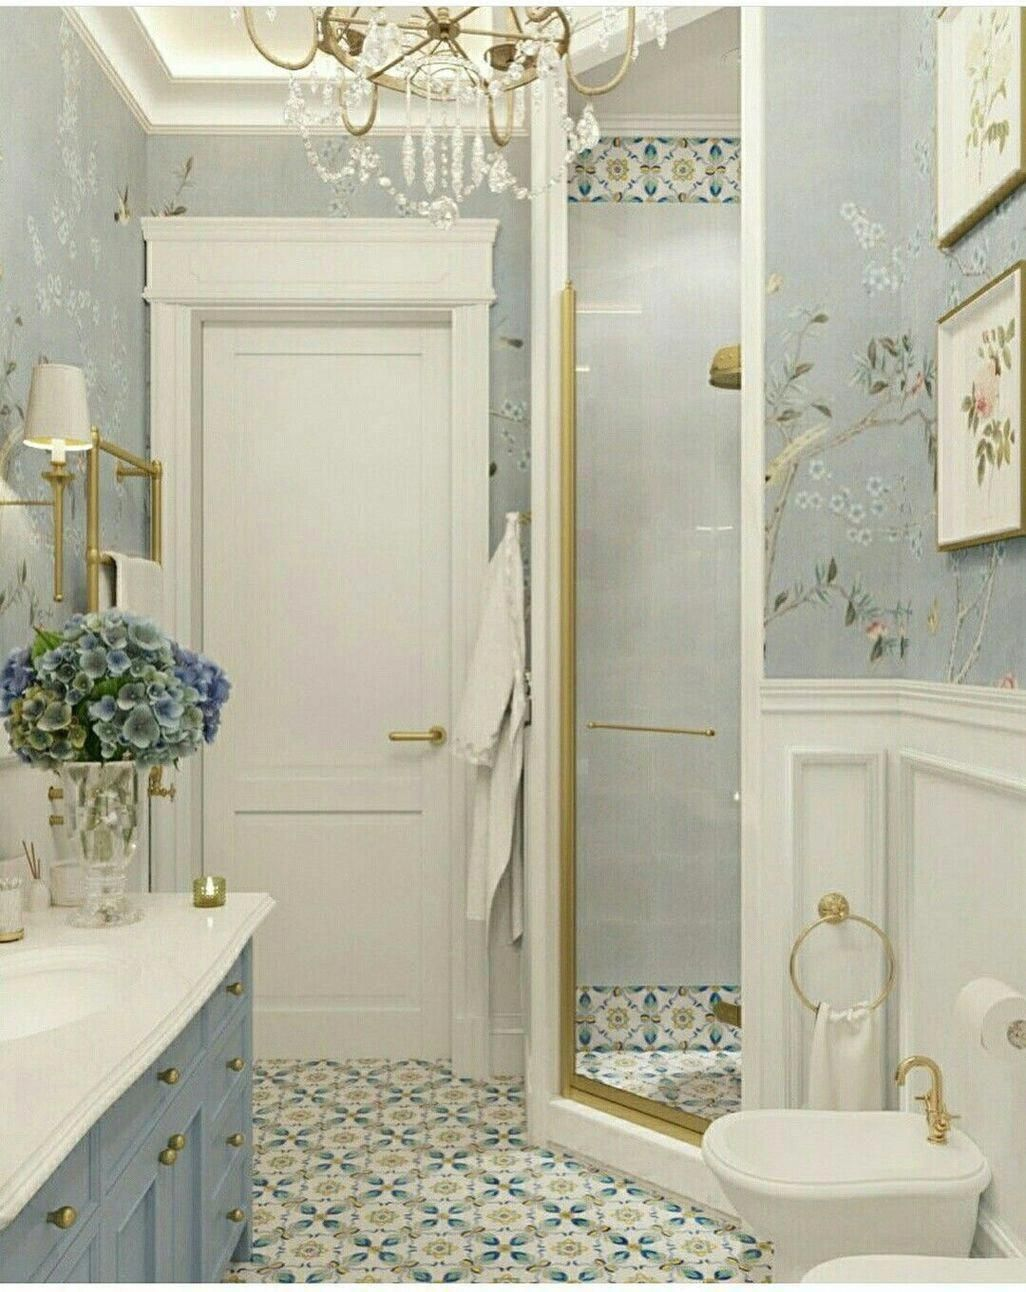 Bathroom Accents Accessories Navy Blue And Gold Bathroom Accessories Teal Green Bathroom Acces Classic Bathroom Classic Bathroom Design Beautiful Bathrooms